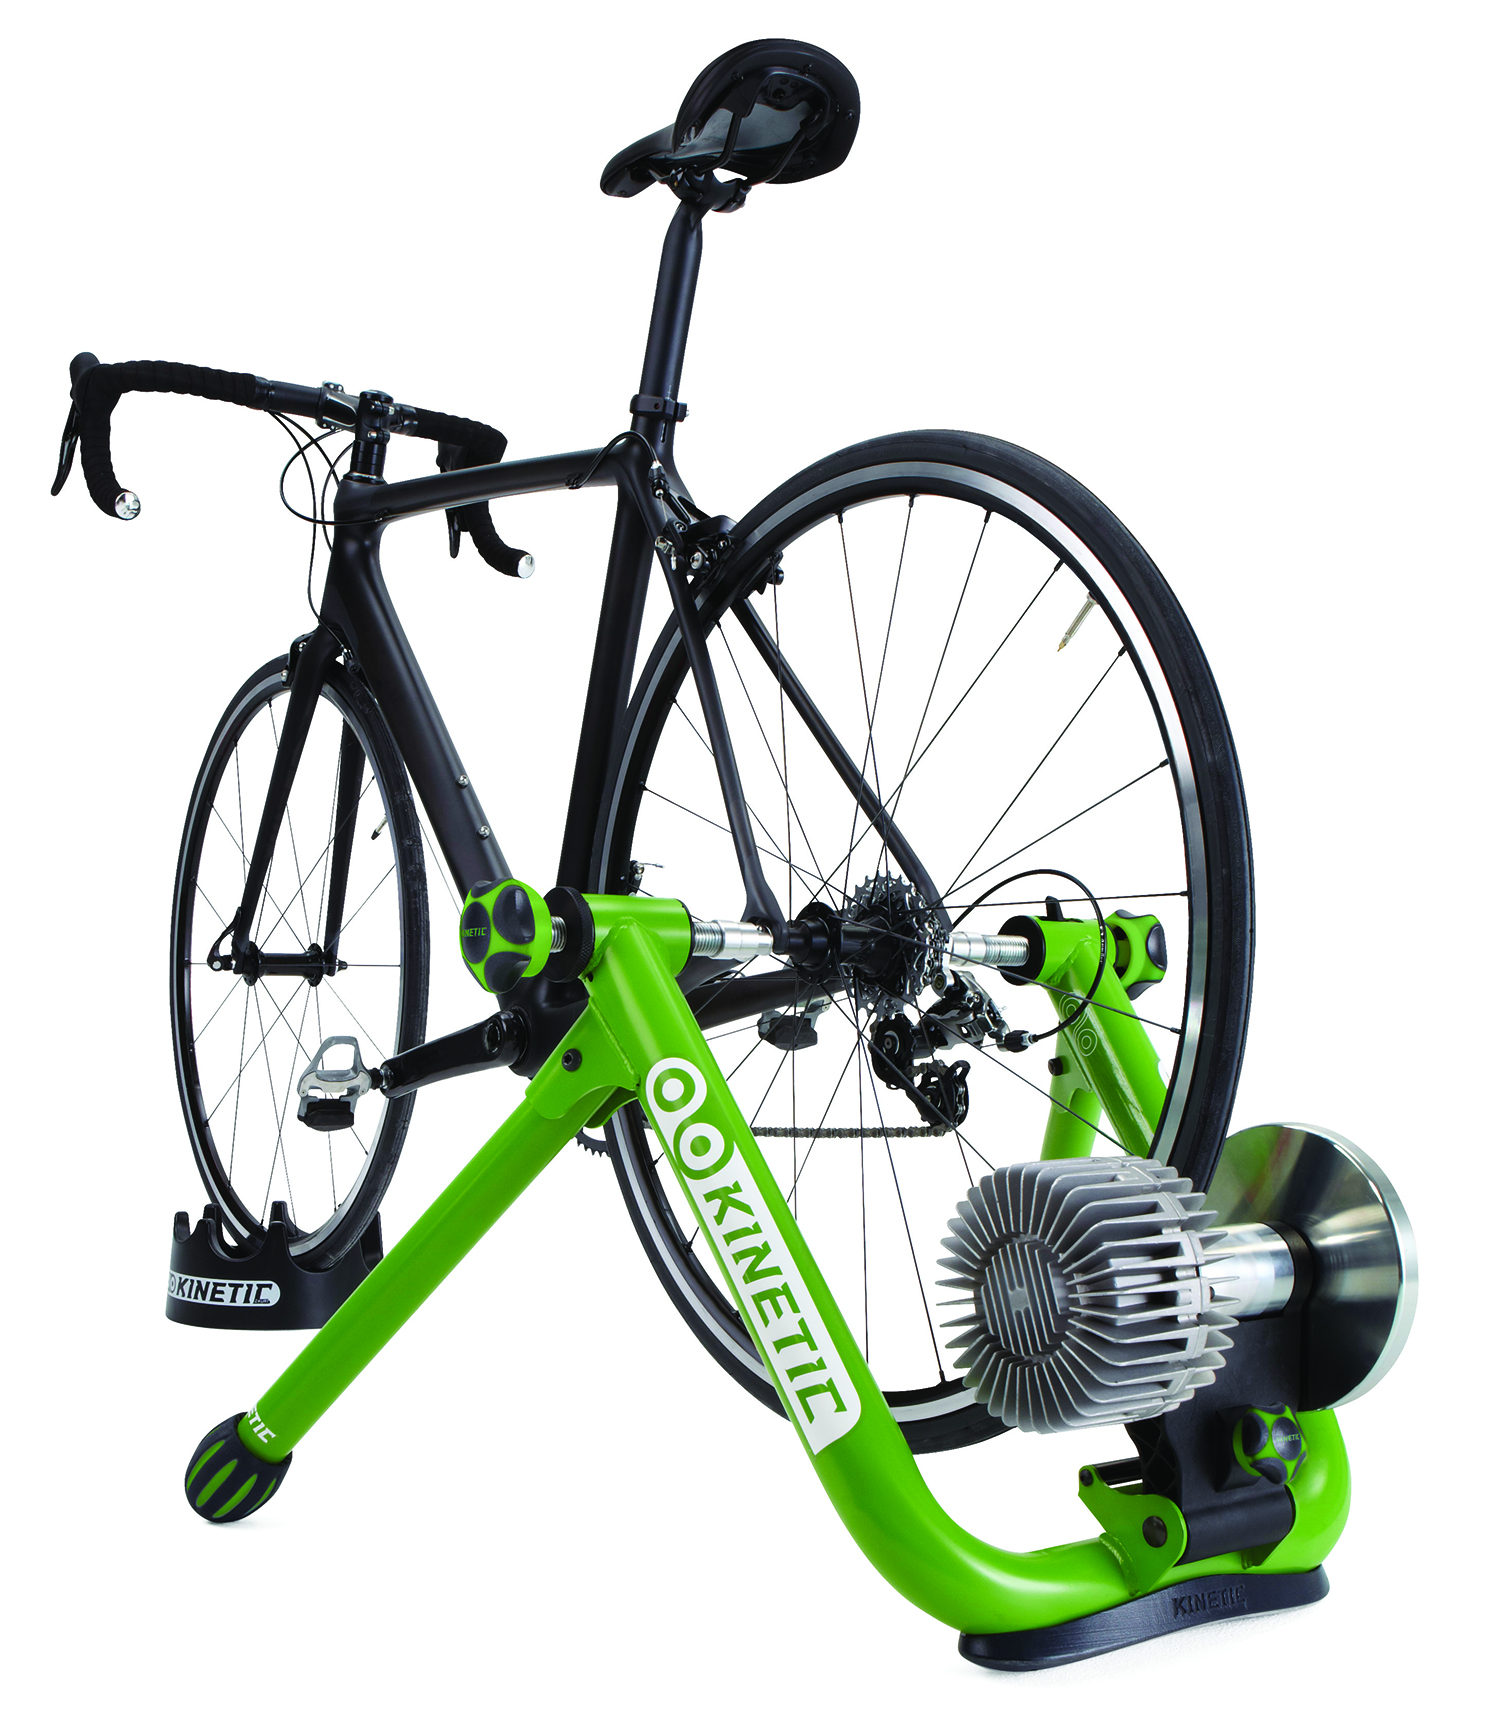 You can quickly attach your bike to a resistance trainer to get a great indoor workout.  Photo credit: Kurt Kinetic